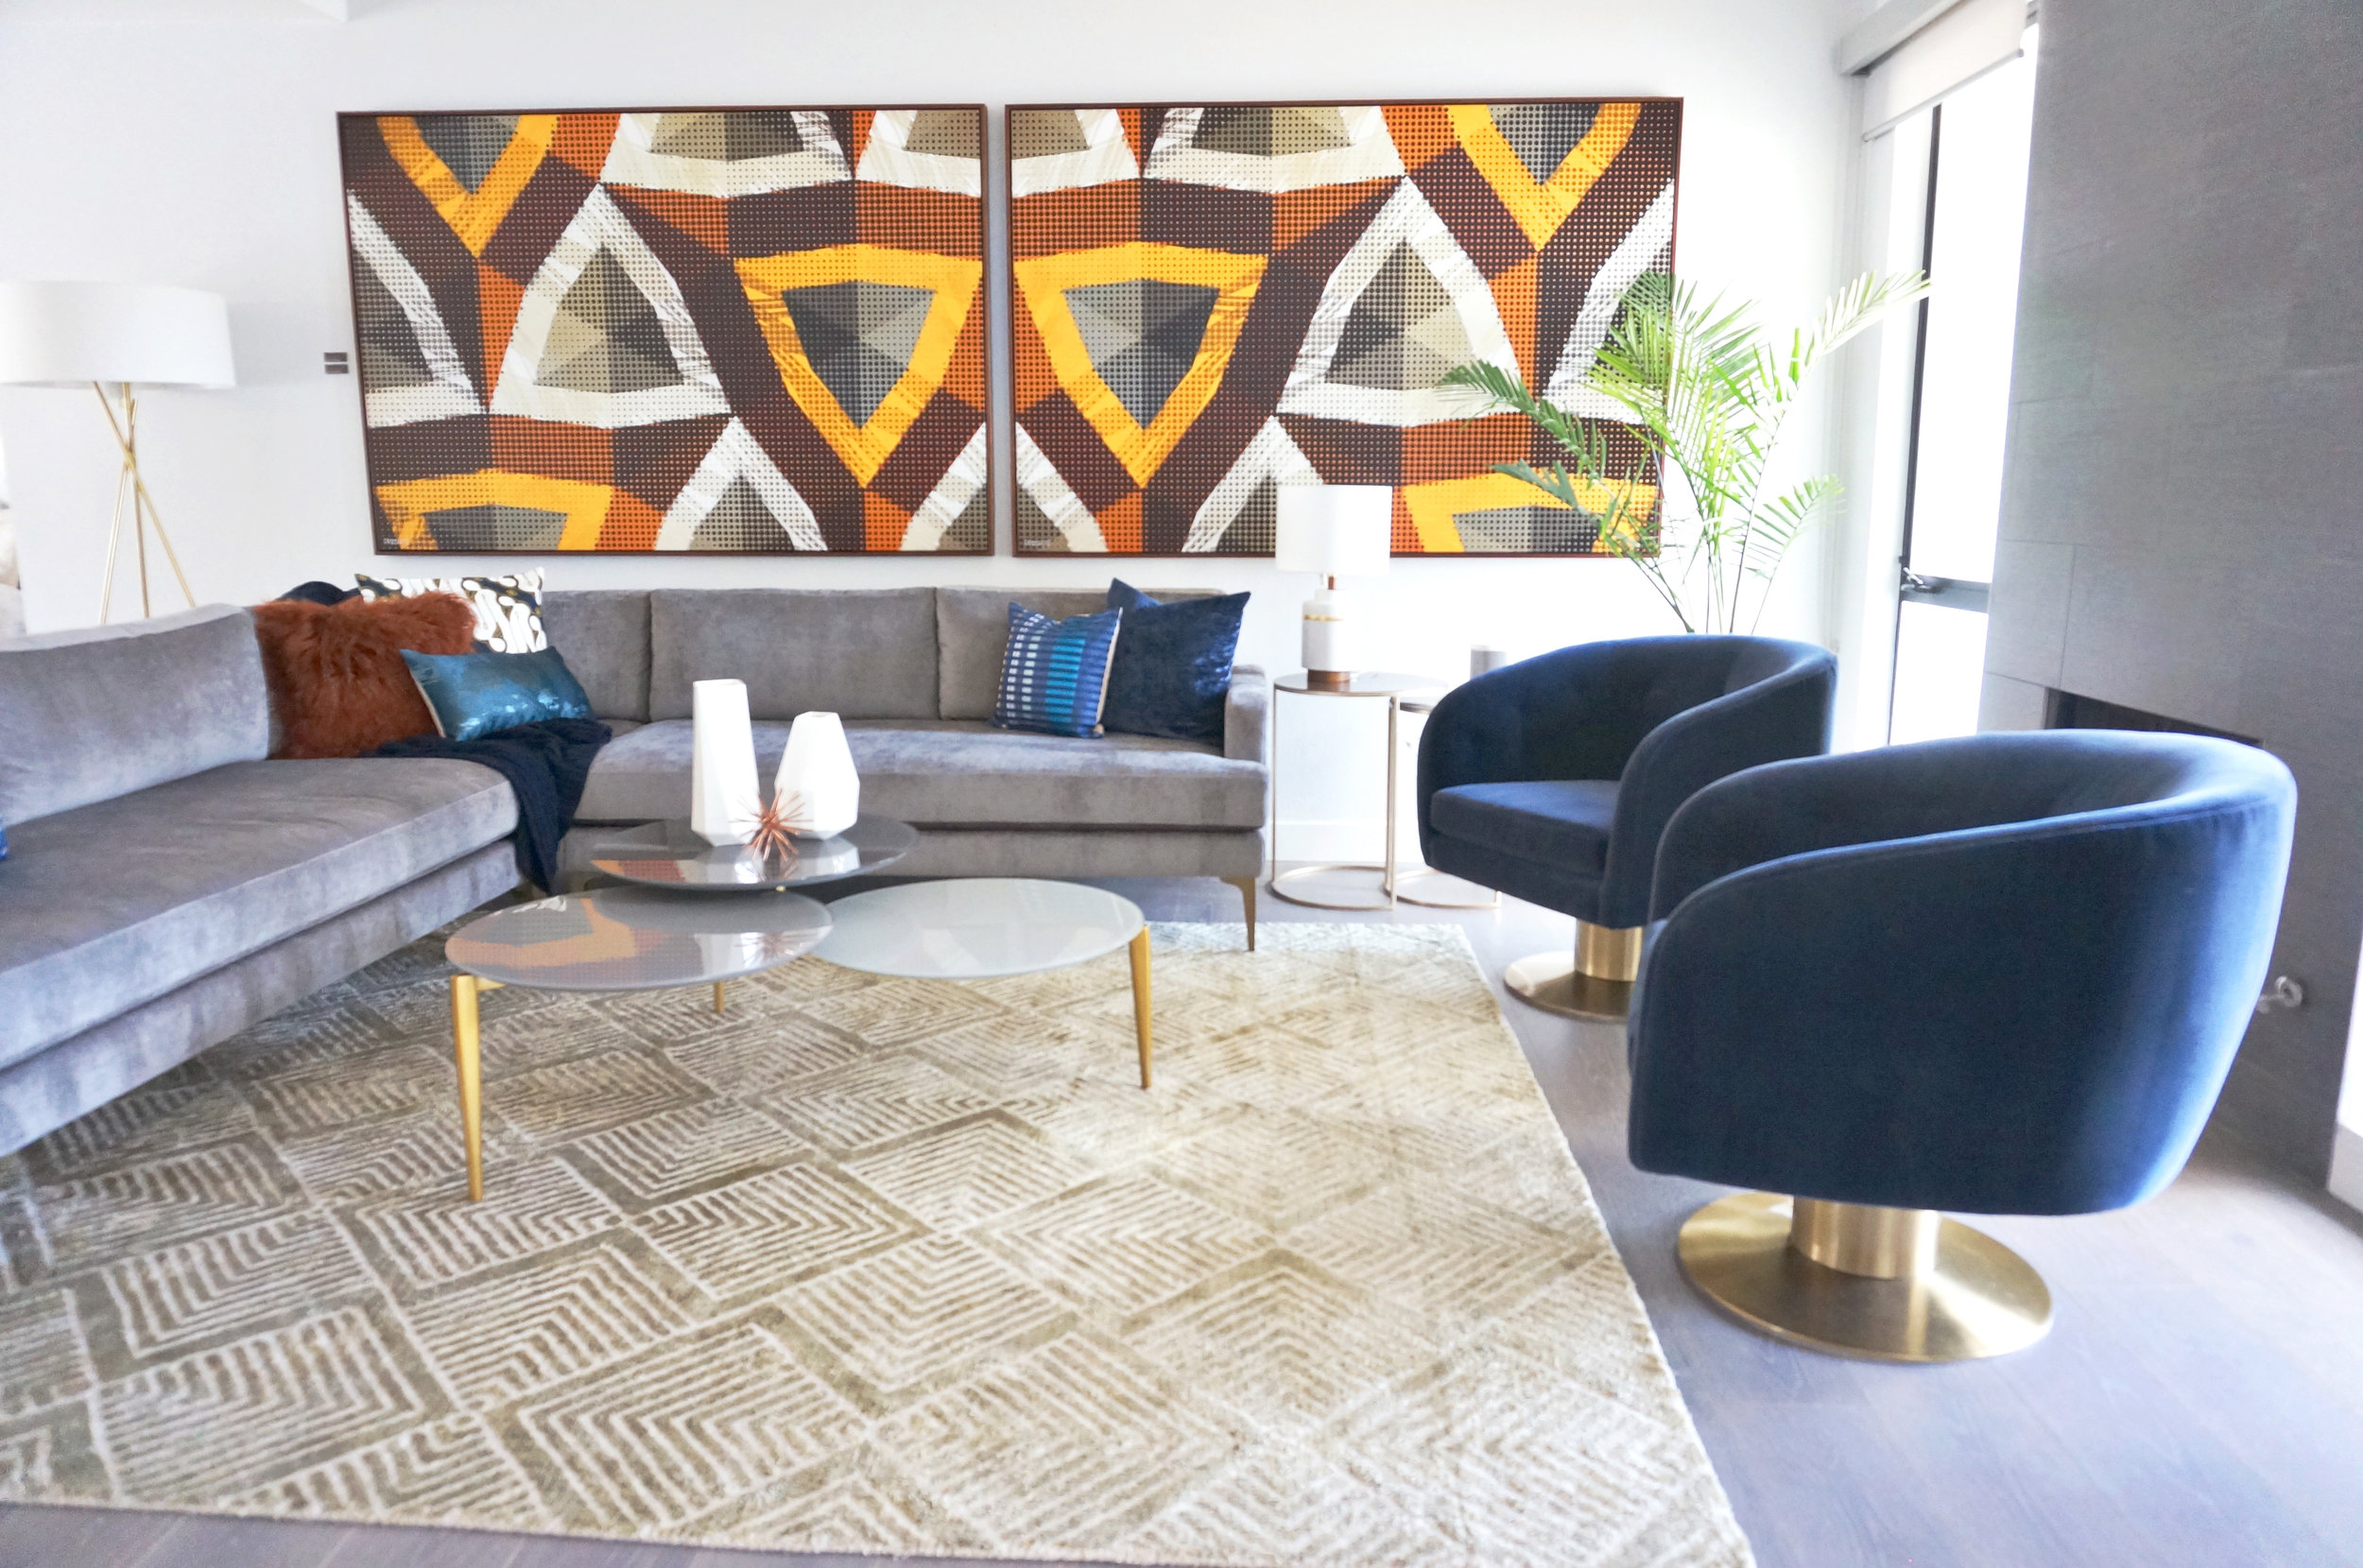 Lucious velvet tulip chairs and bold shapes at the West Elm Pool House